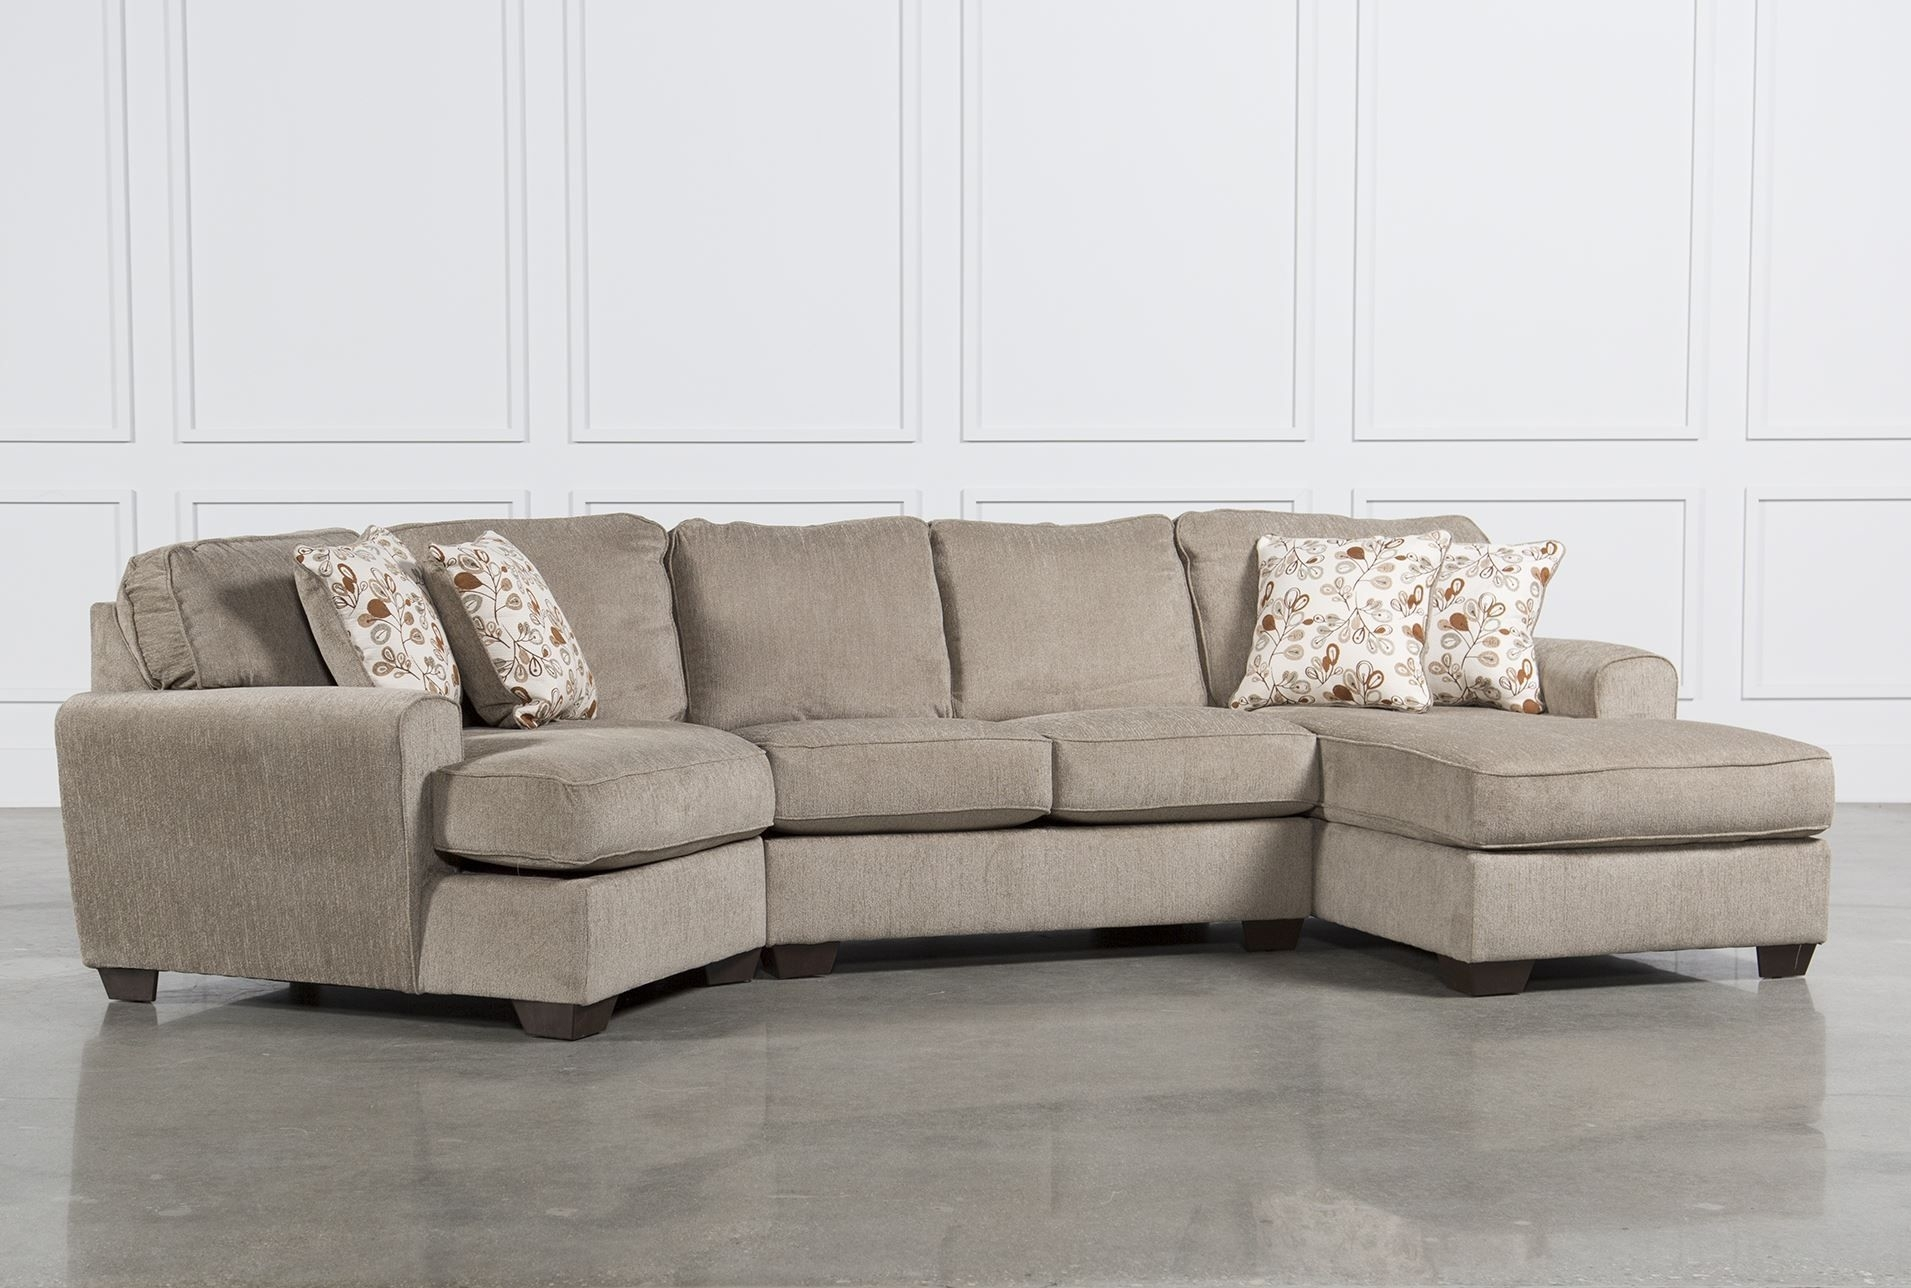 Patola Park 3 Piece Cuddler Sectional W/raf Corner Chaise | Mon With Regard To Sectional Sofas With Cuddler (View 5 of 10)